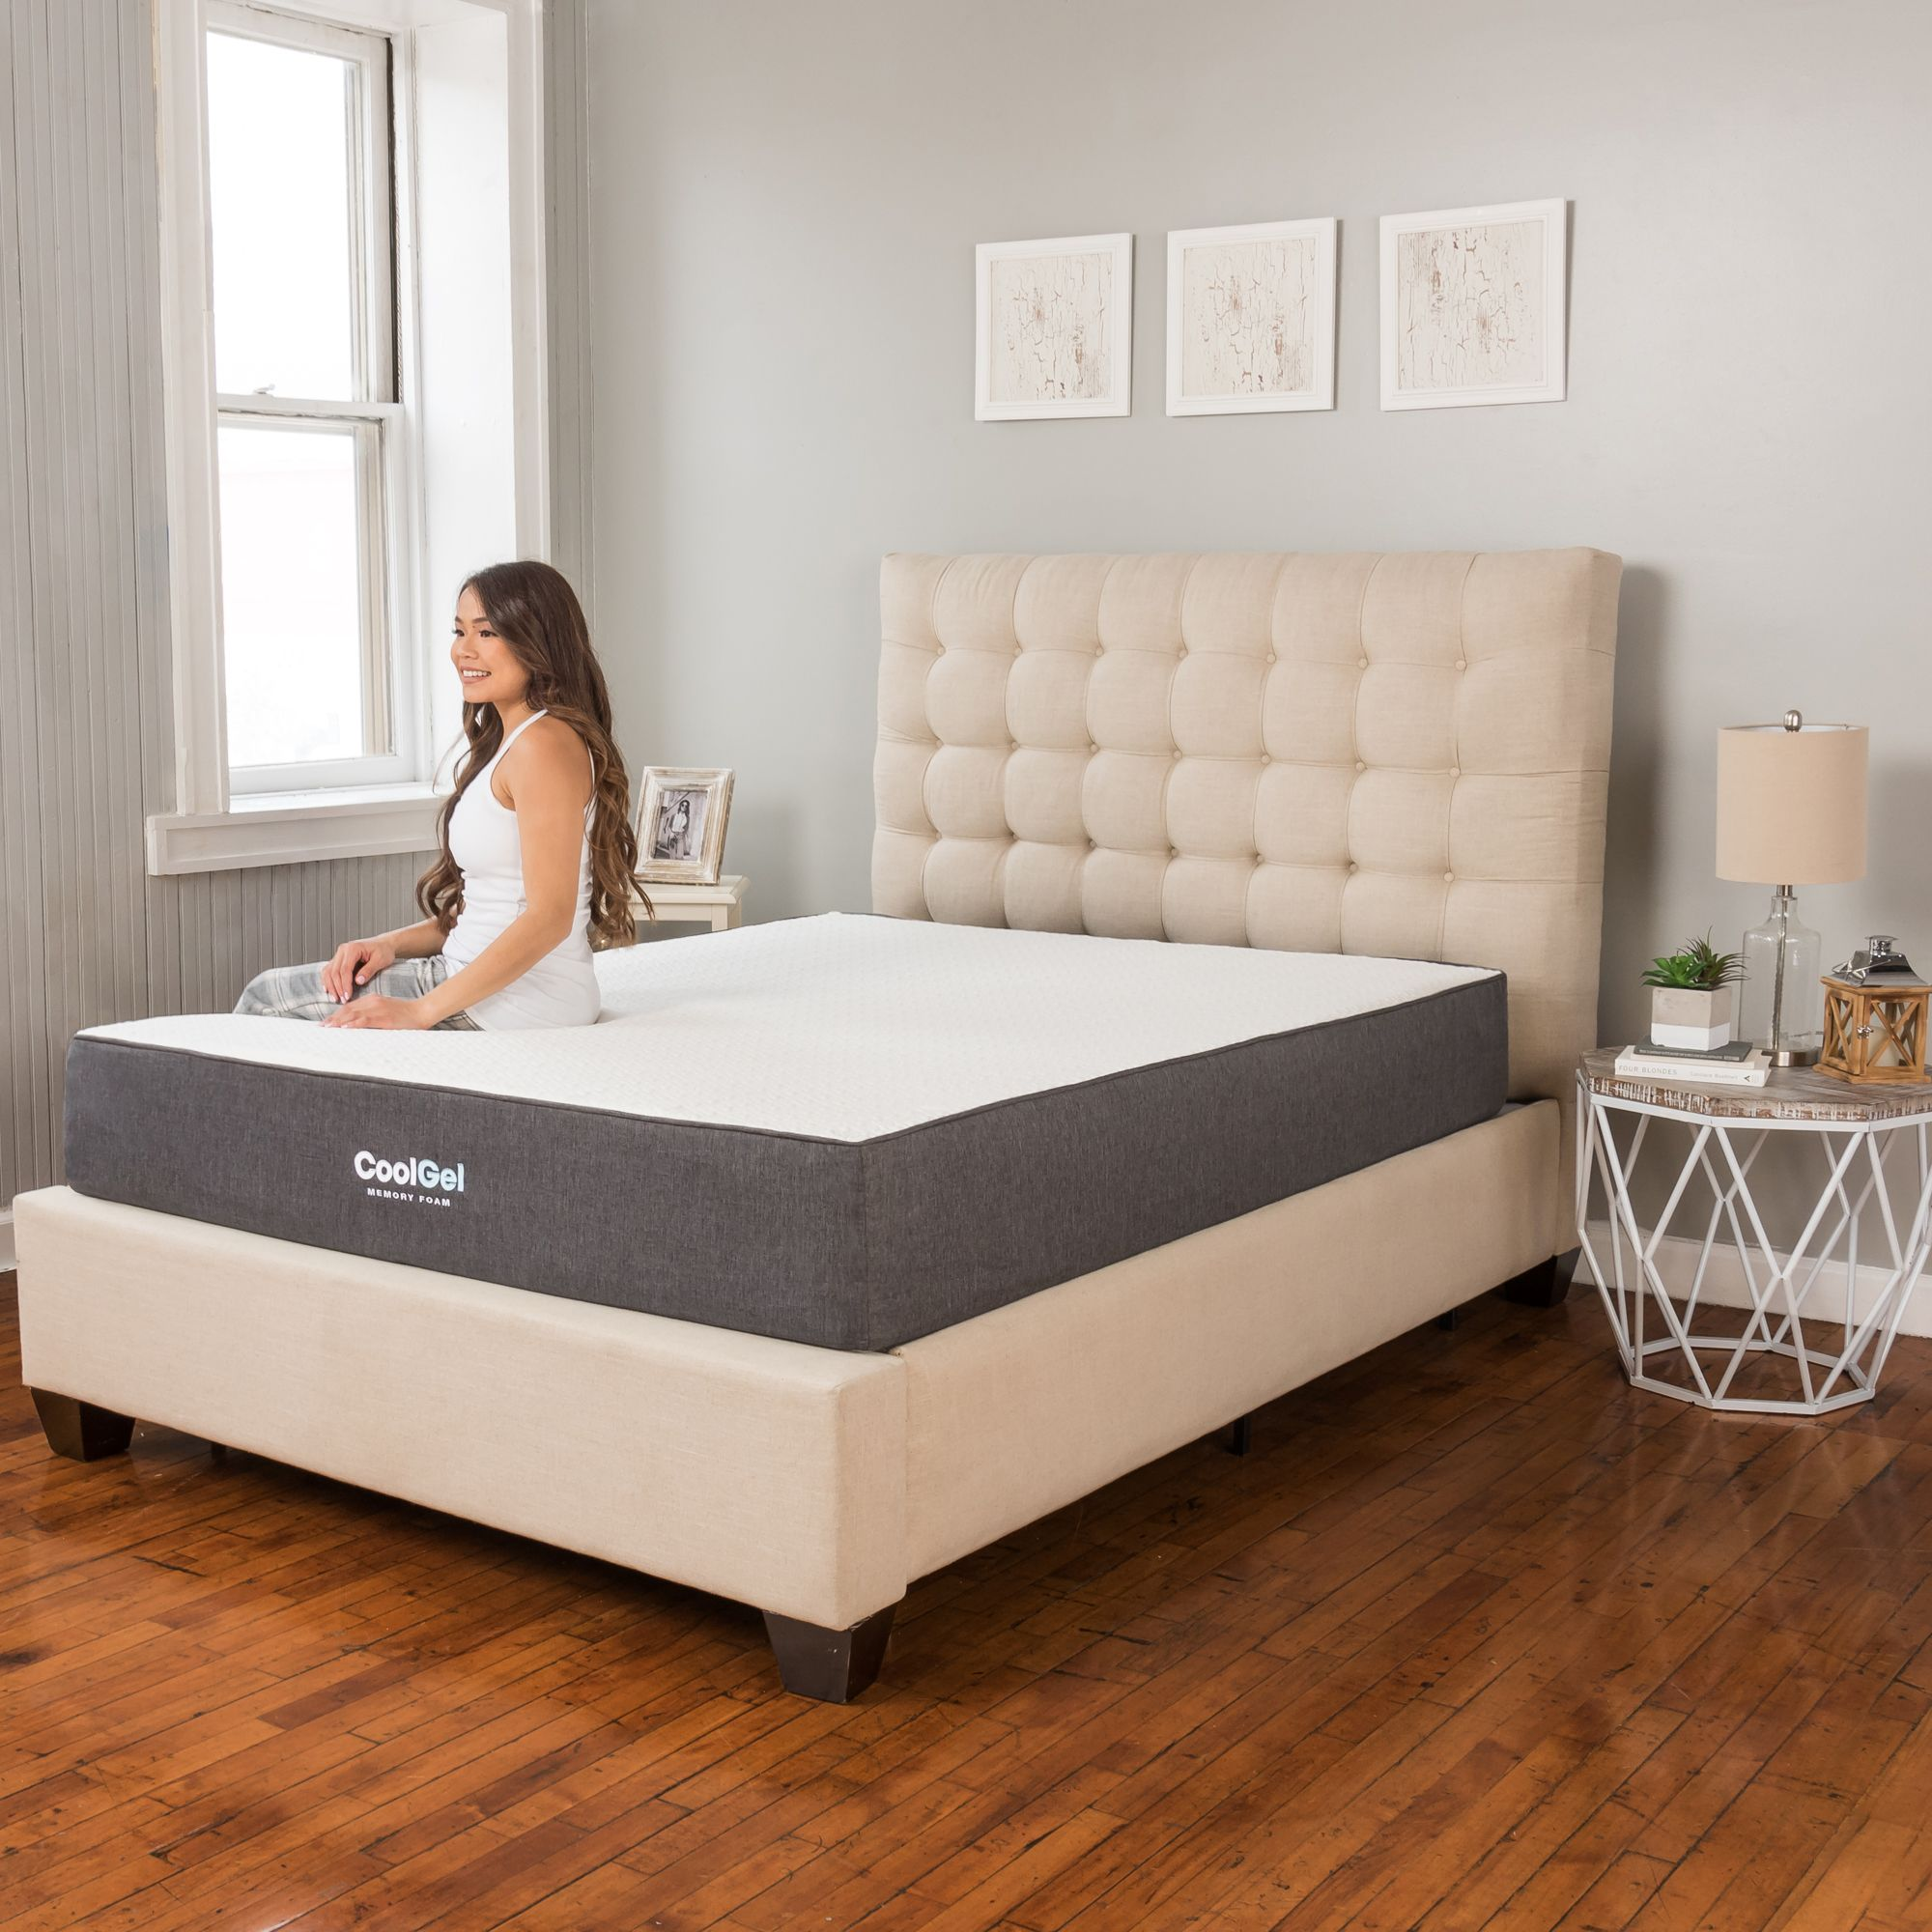 sale mattress soft twin lovely memory tempurpedic beautiful of pictures foam size firm bed queen